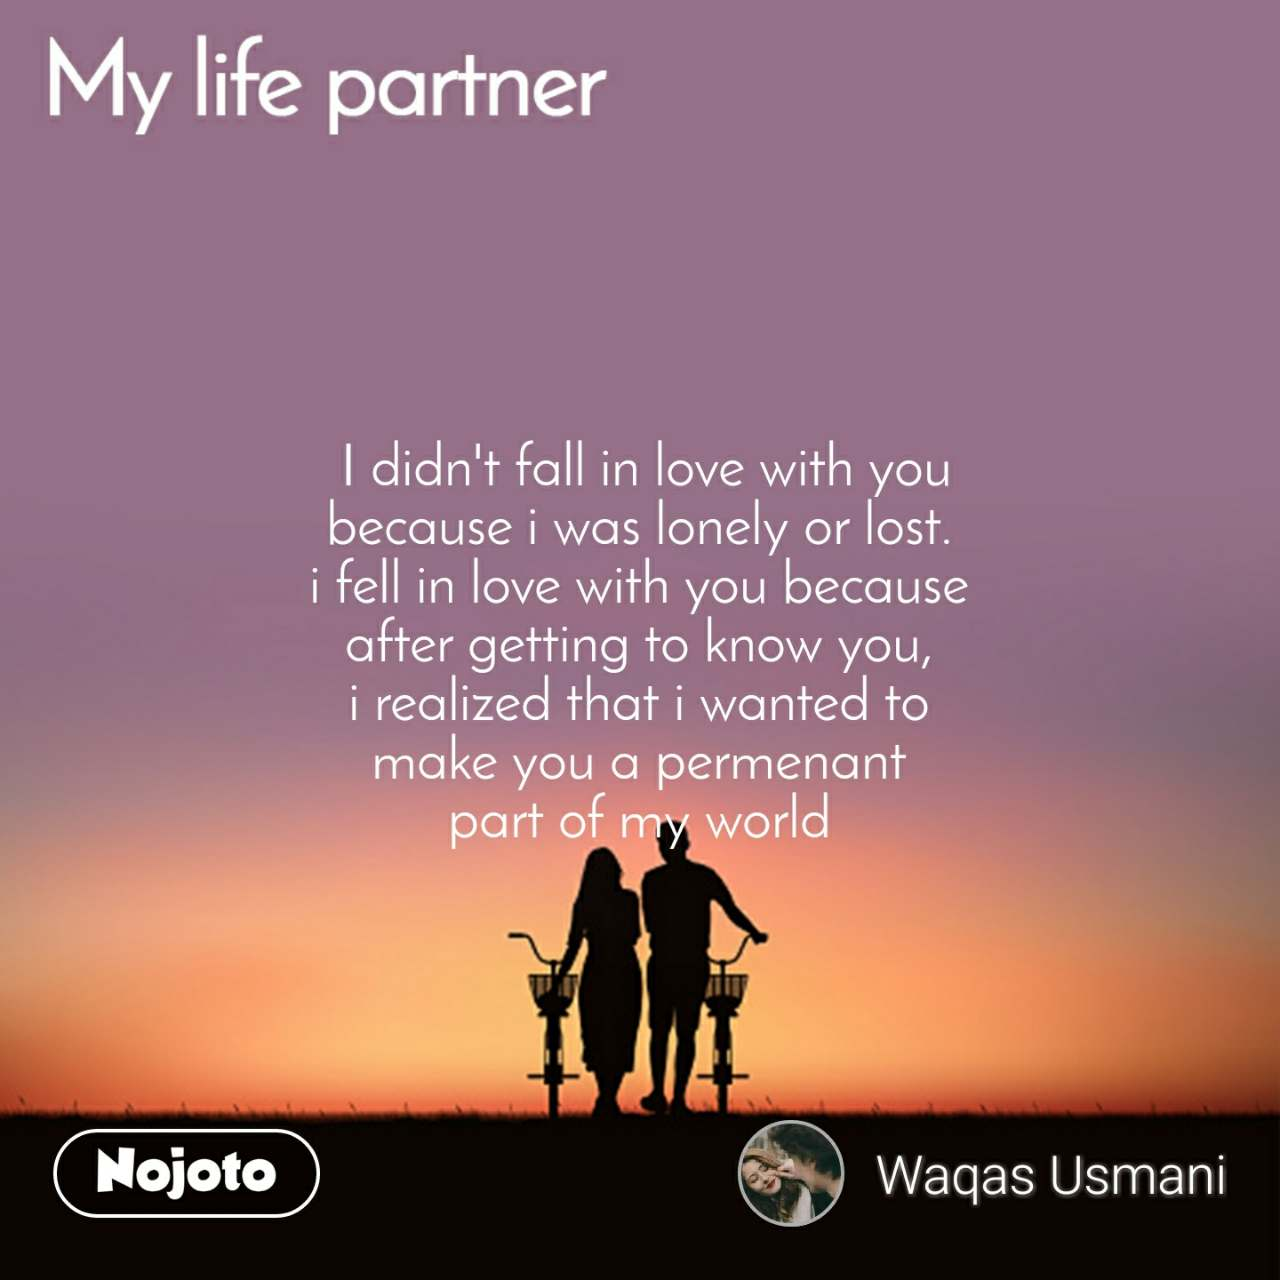 My Life Partner  I didn't fall in love with you because i was lonely or lost. i fell in love with you because after getting to know you, i realized that i wanted to make you a permenant part of my world